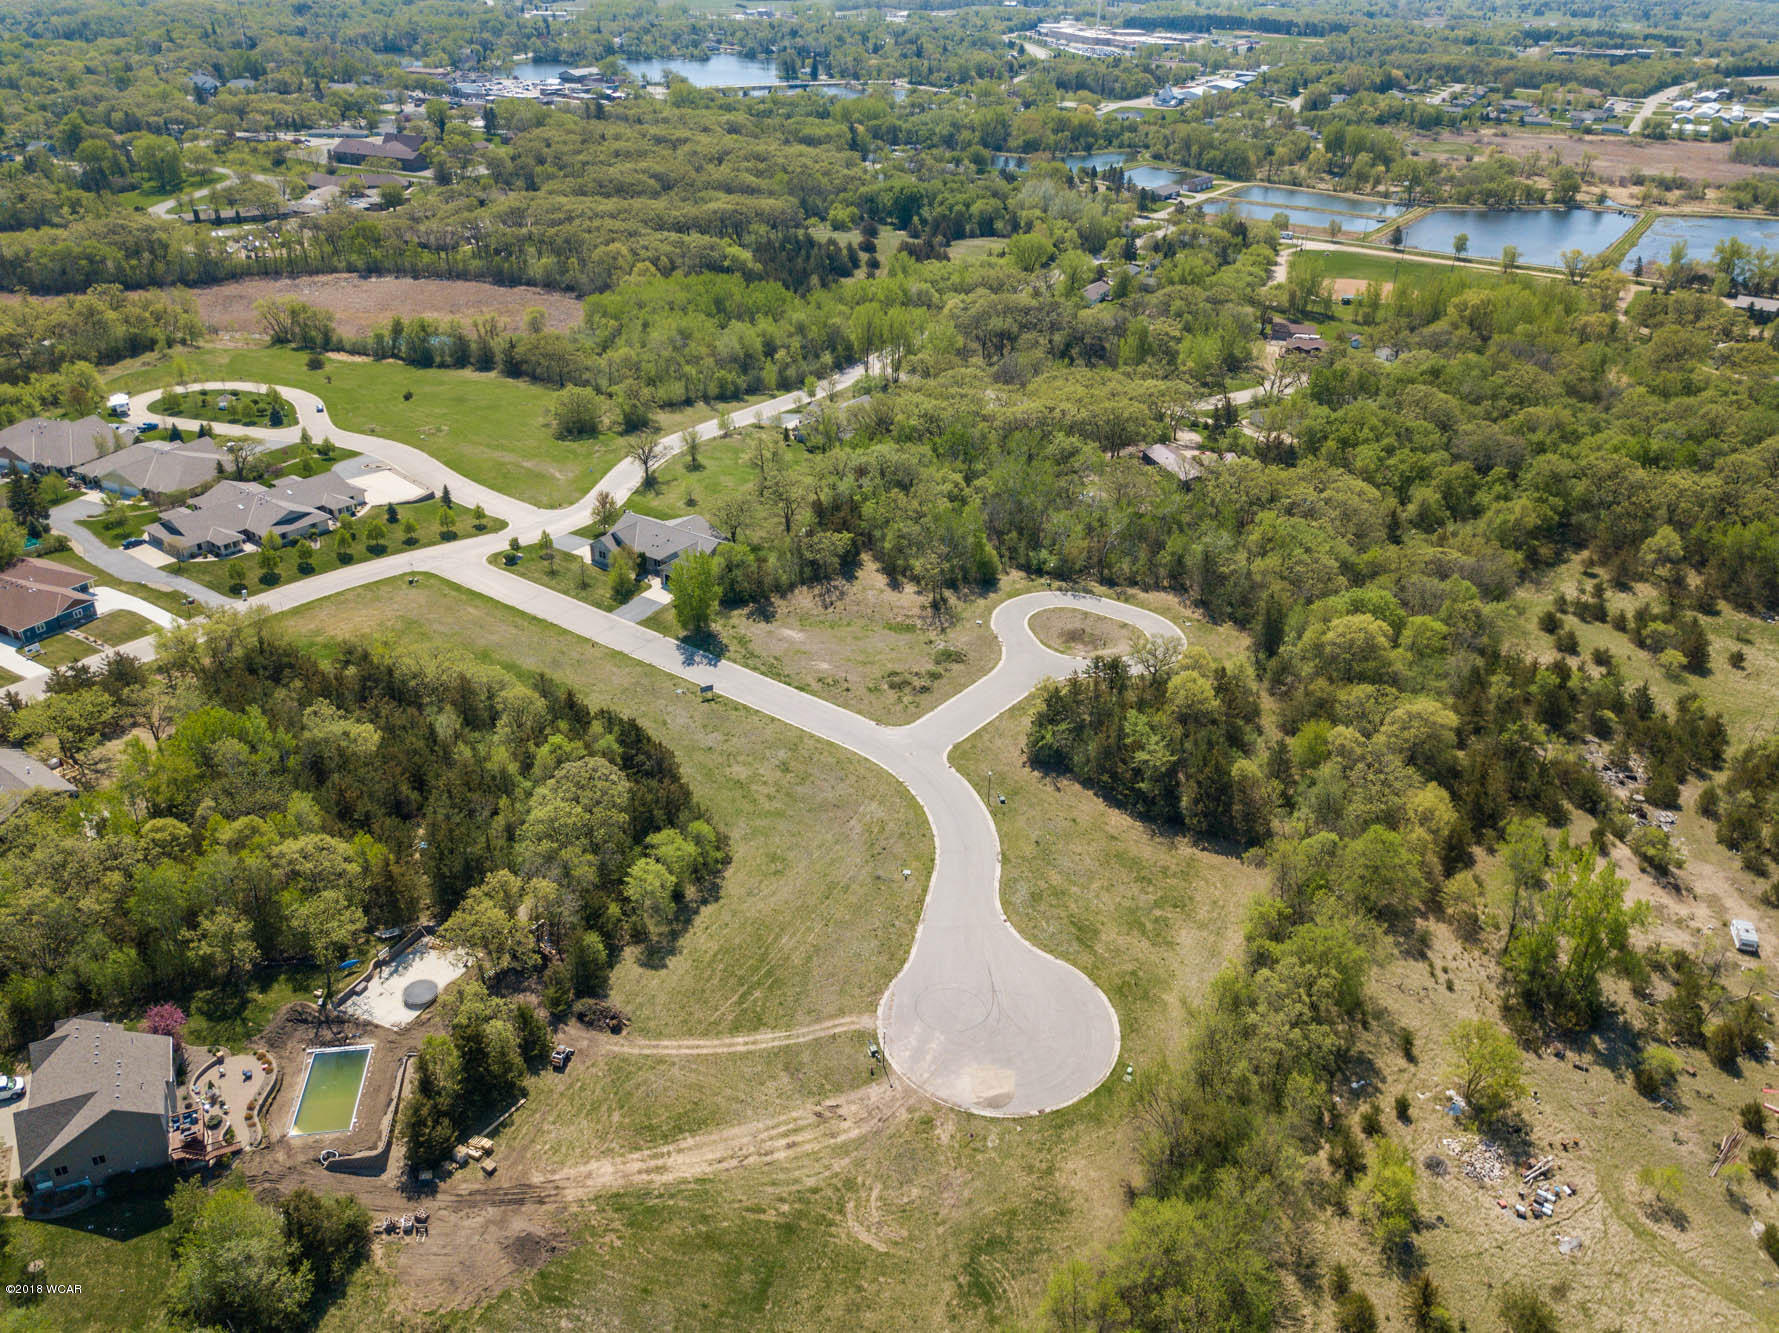 0000 Wildwood Drive,New London,Residential Land,Wildwood Drive,6032860